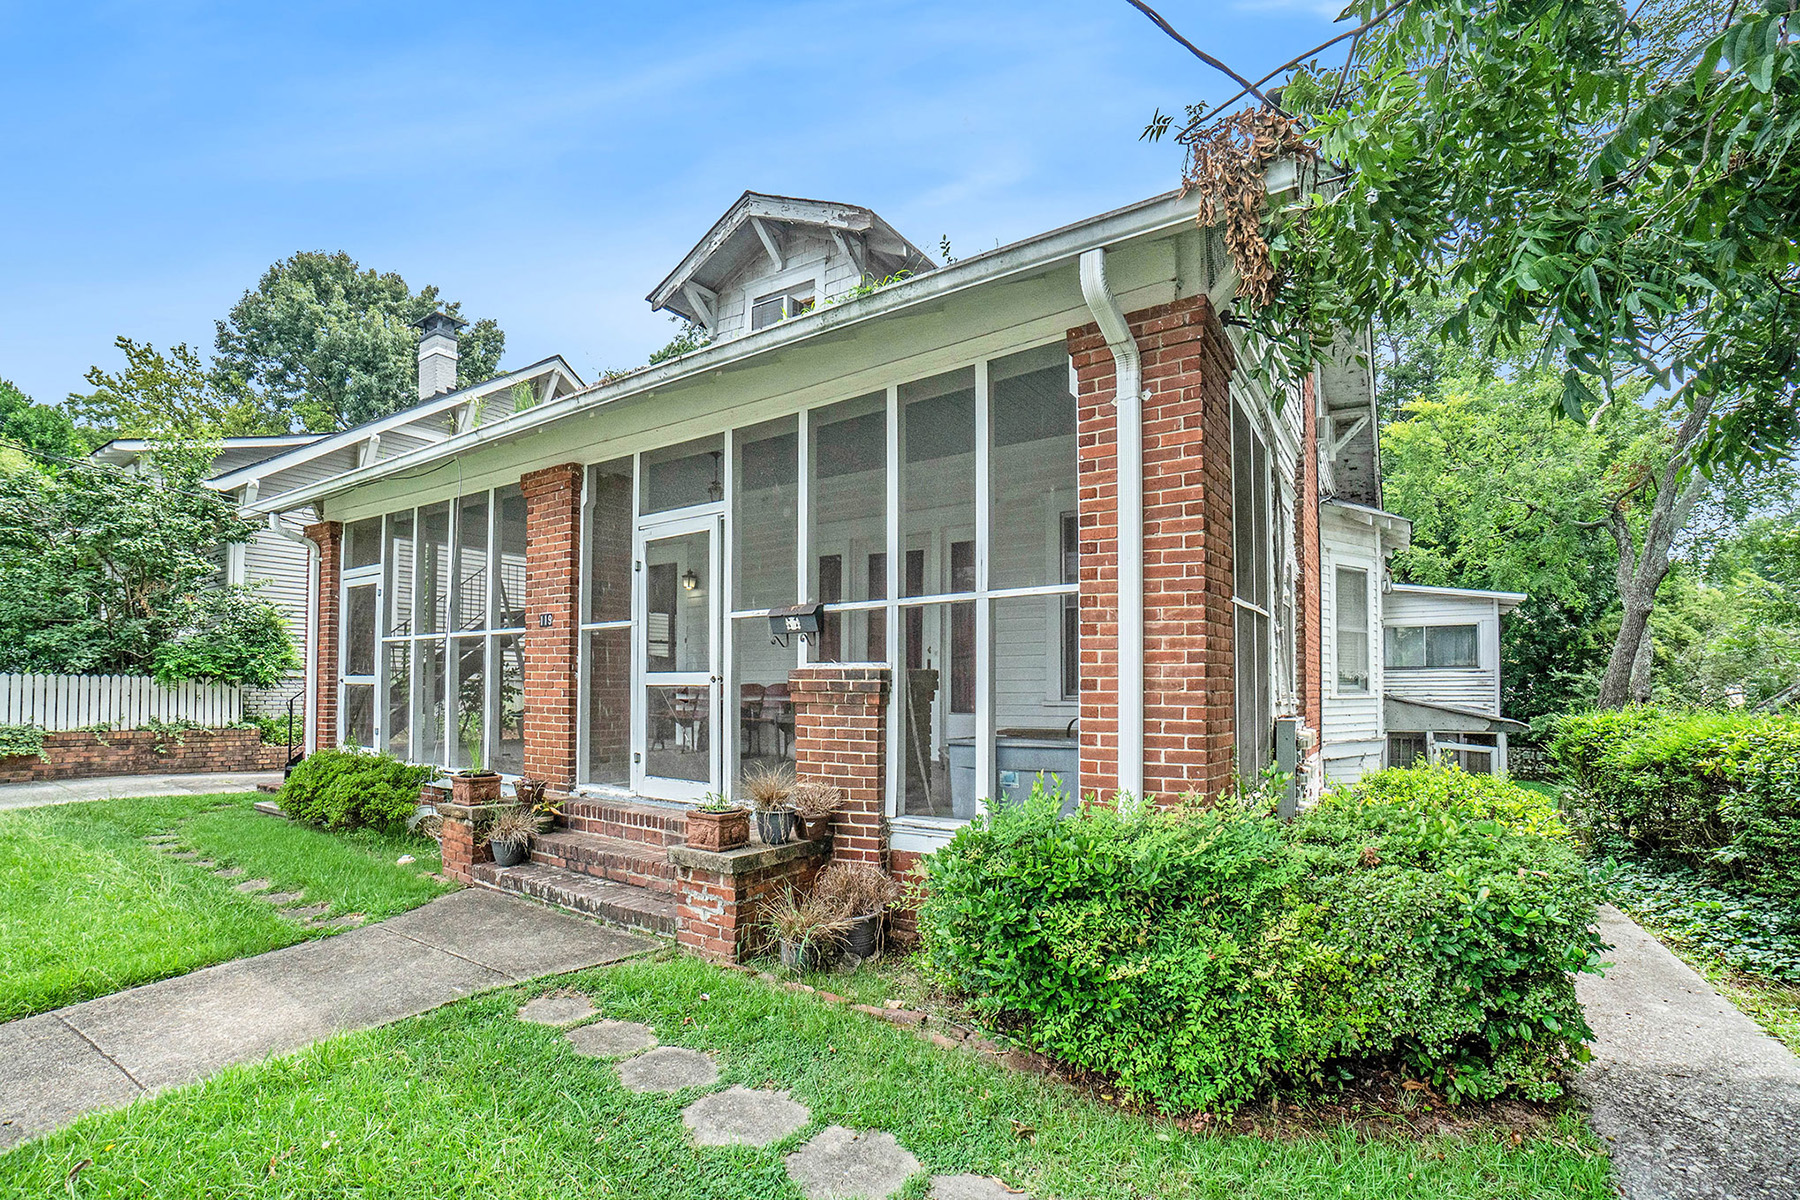 Single Family Homes のために 売買 アット Delight In The Opportunity Of This Urban/Authentic '22 Craftsman Home 119 North Candler St, Decatur, ジョージア 30030 アメリカ